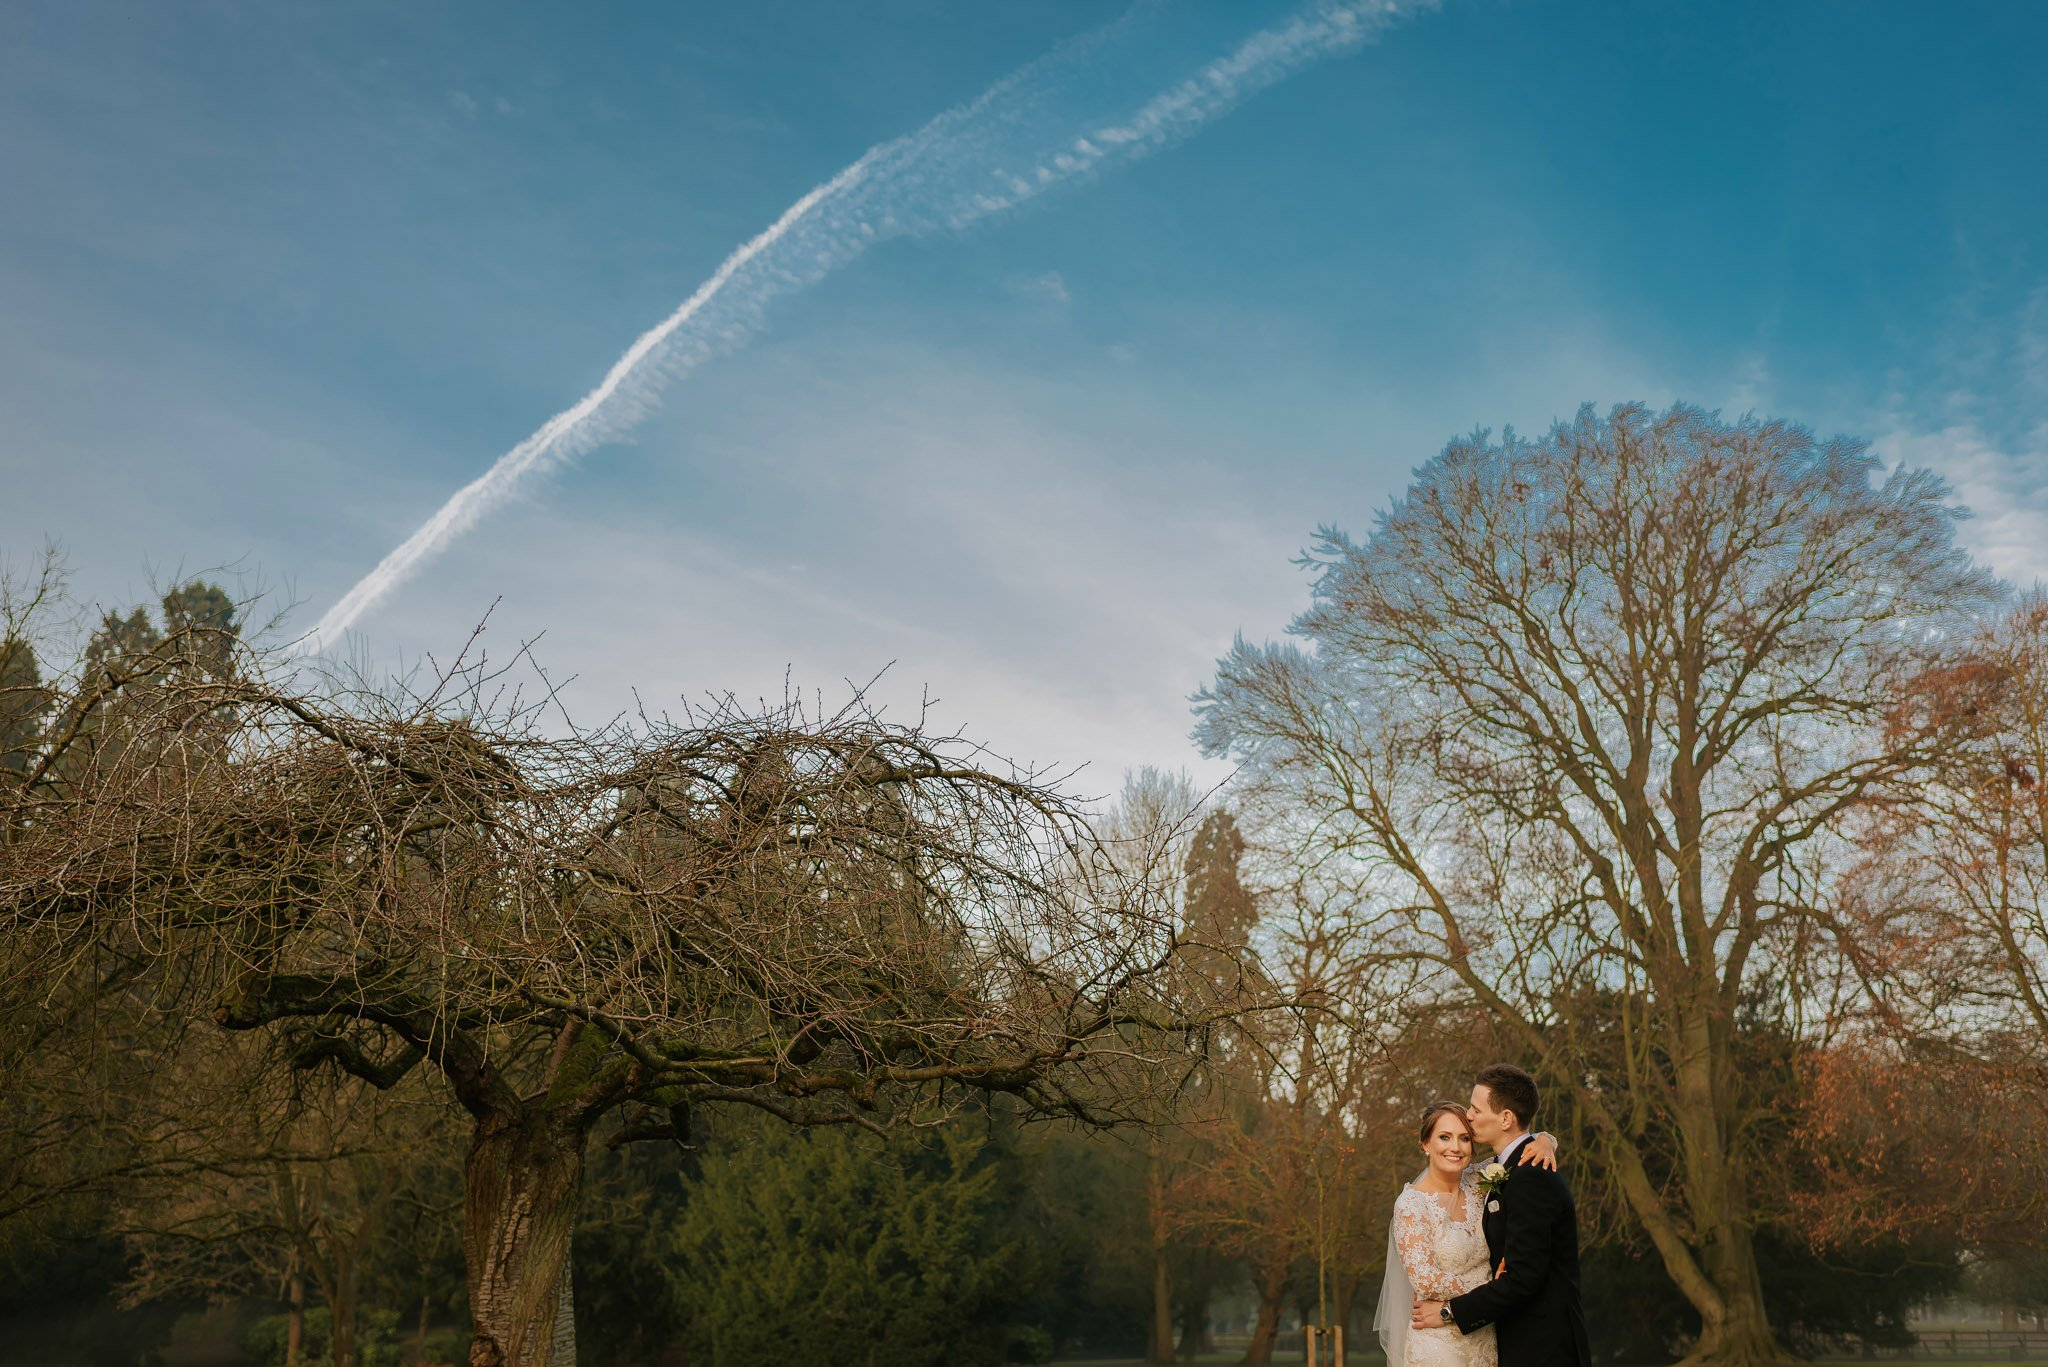 coombe abbey wedding coventry 55 - Coombe Abbey wedding in Coventry, Warwickshire - Sam + Matt